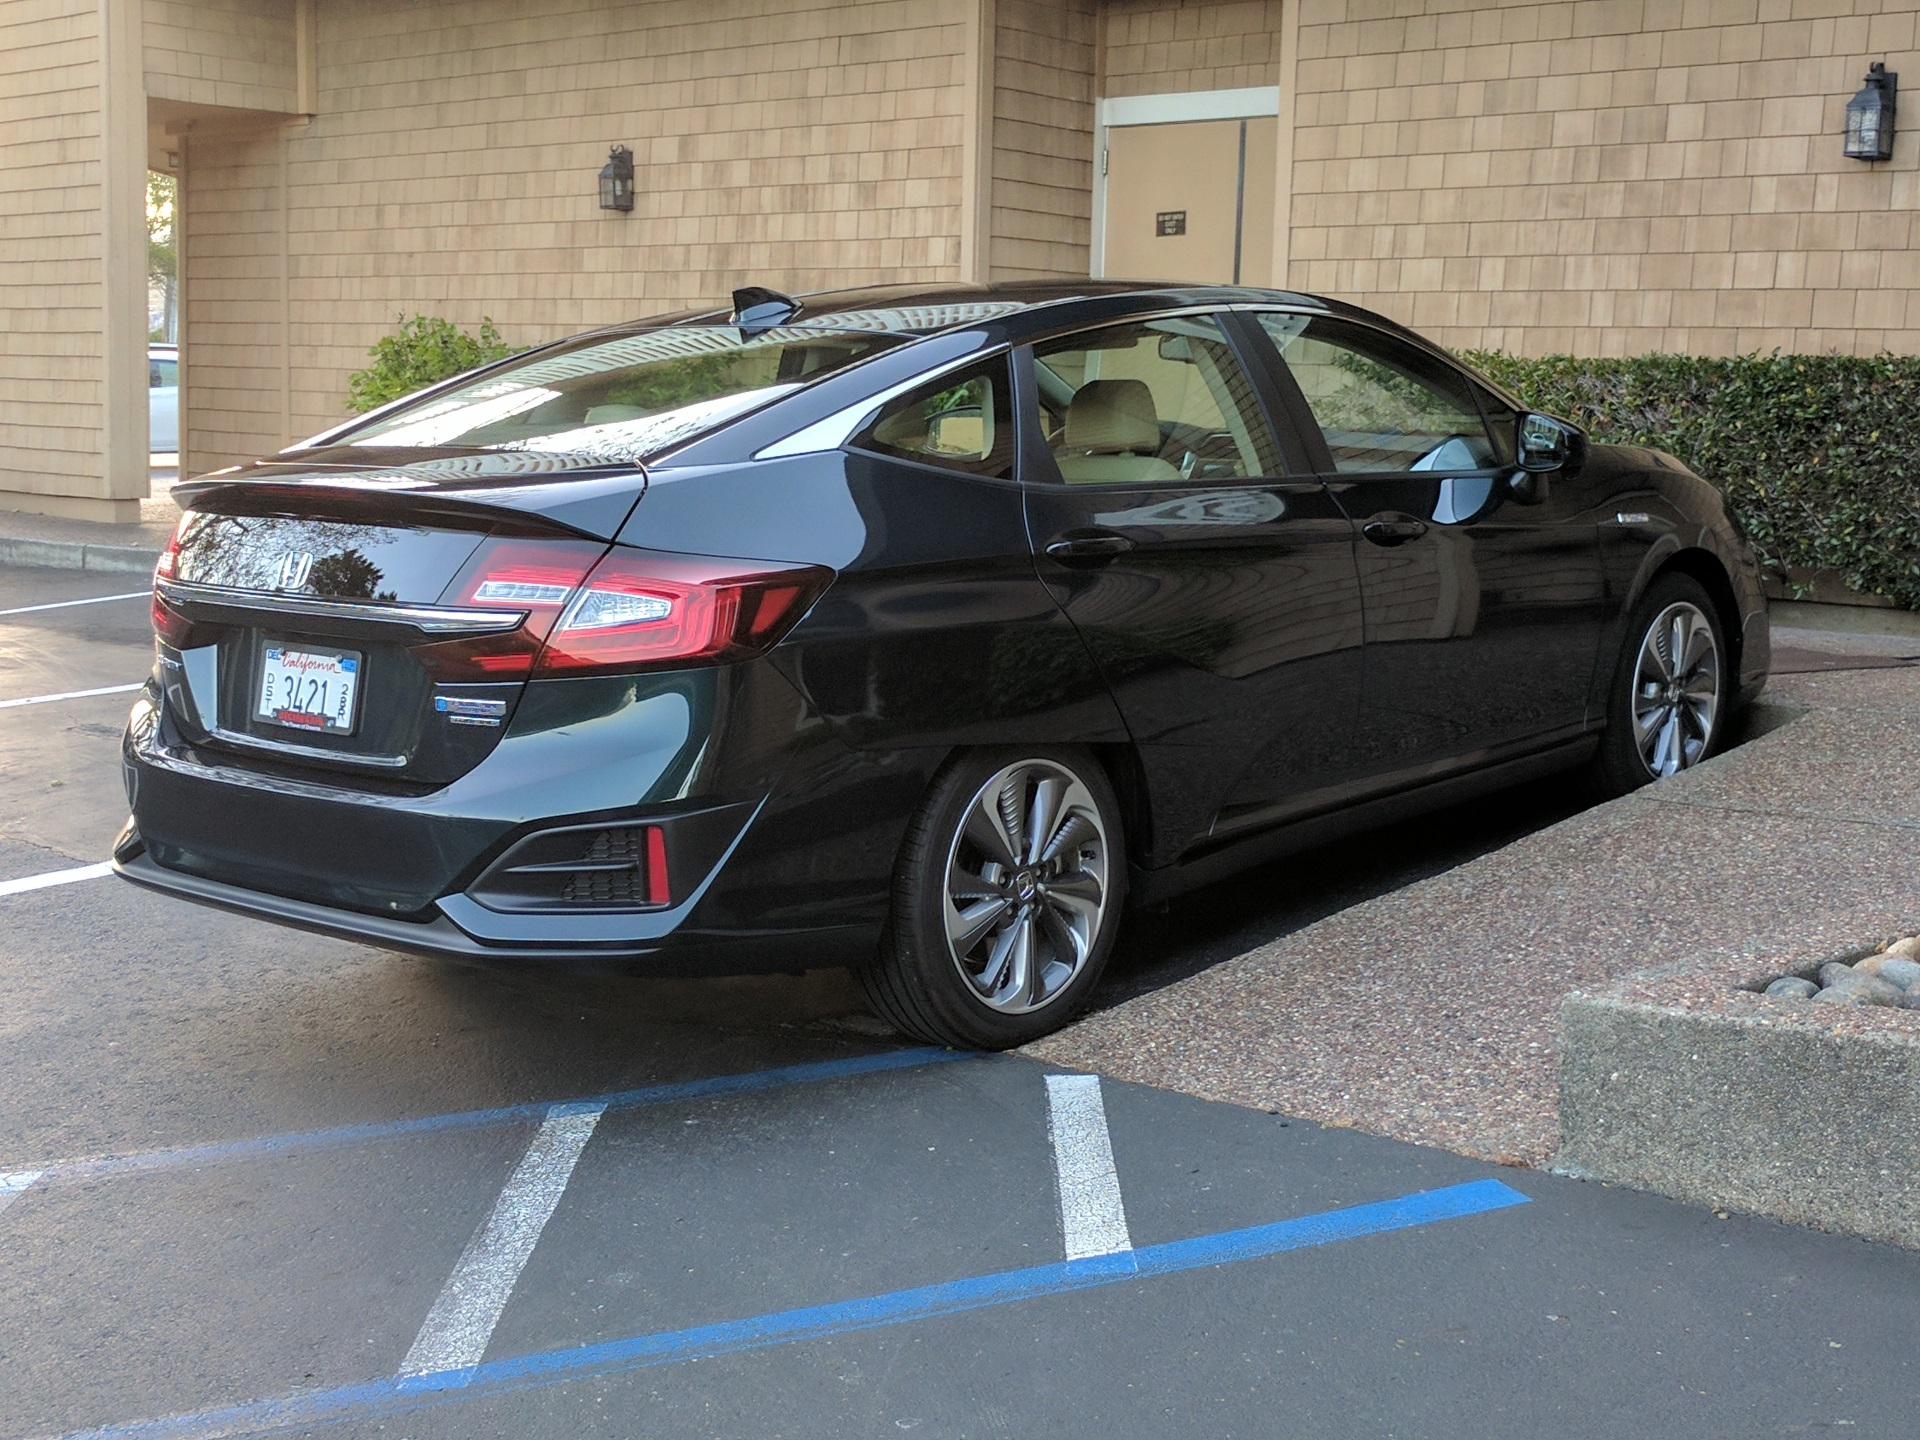 Ghosn On Evs Honda Clarity Phev Driven California Emissions